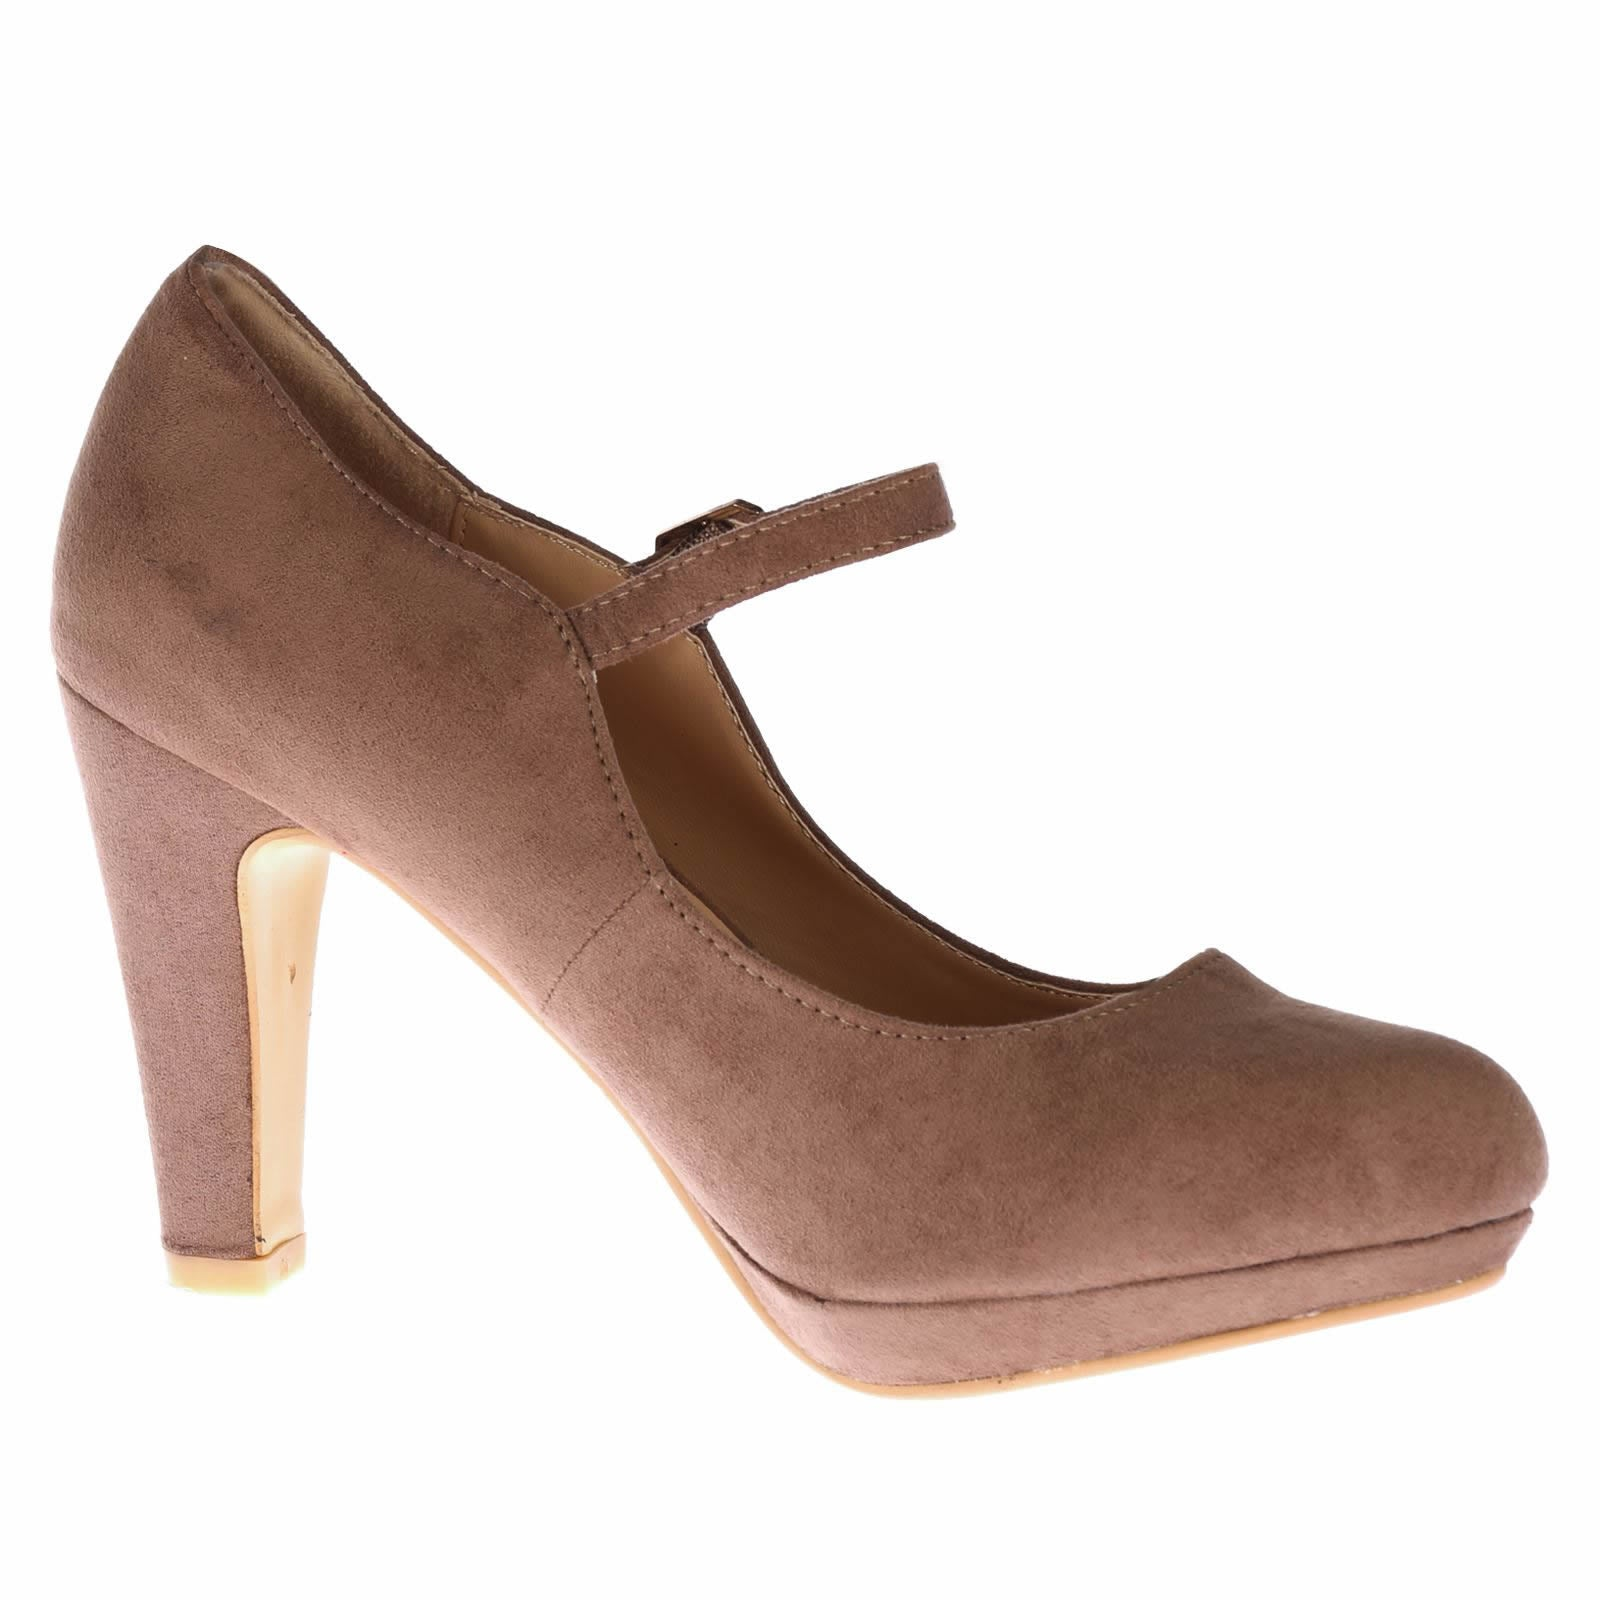 Emmeline Platform Mary Janes in Khaki Tan Faux Suede - Feet First Fashion